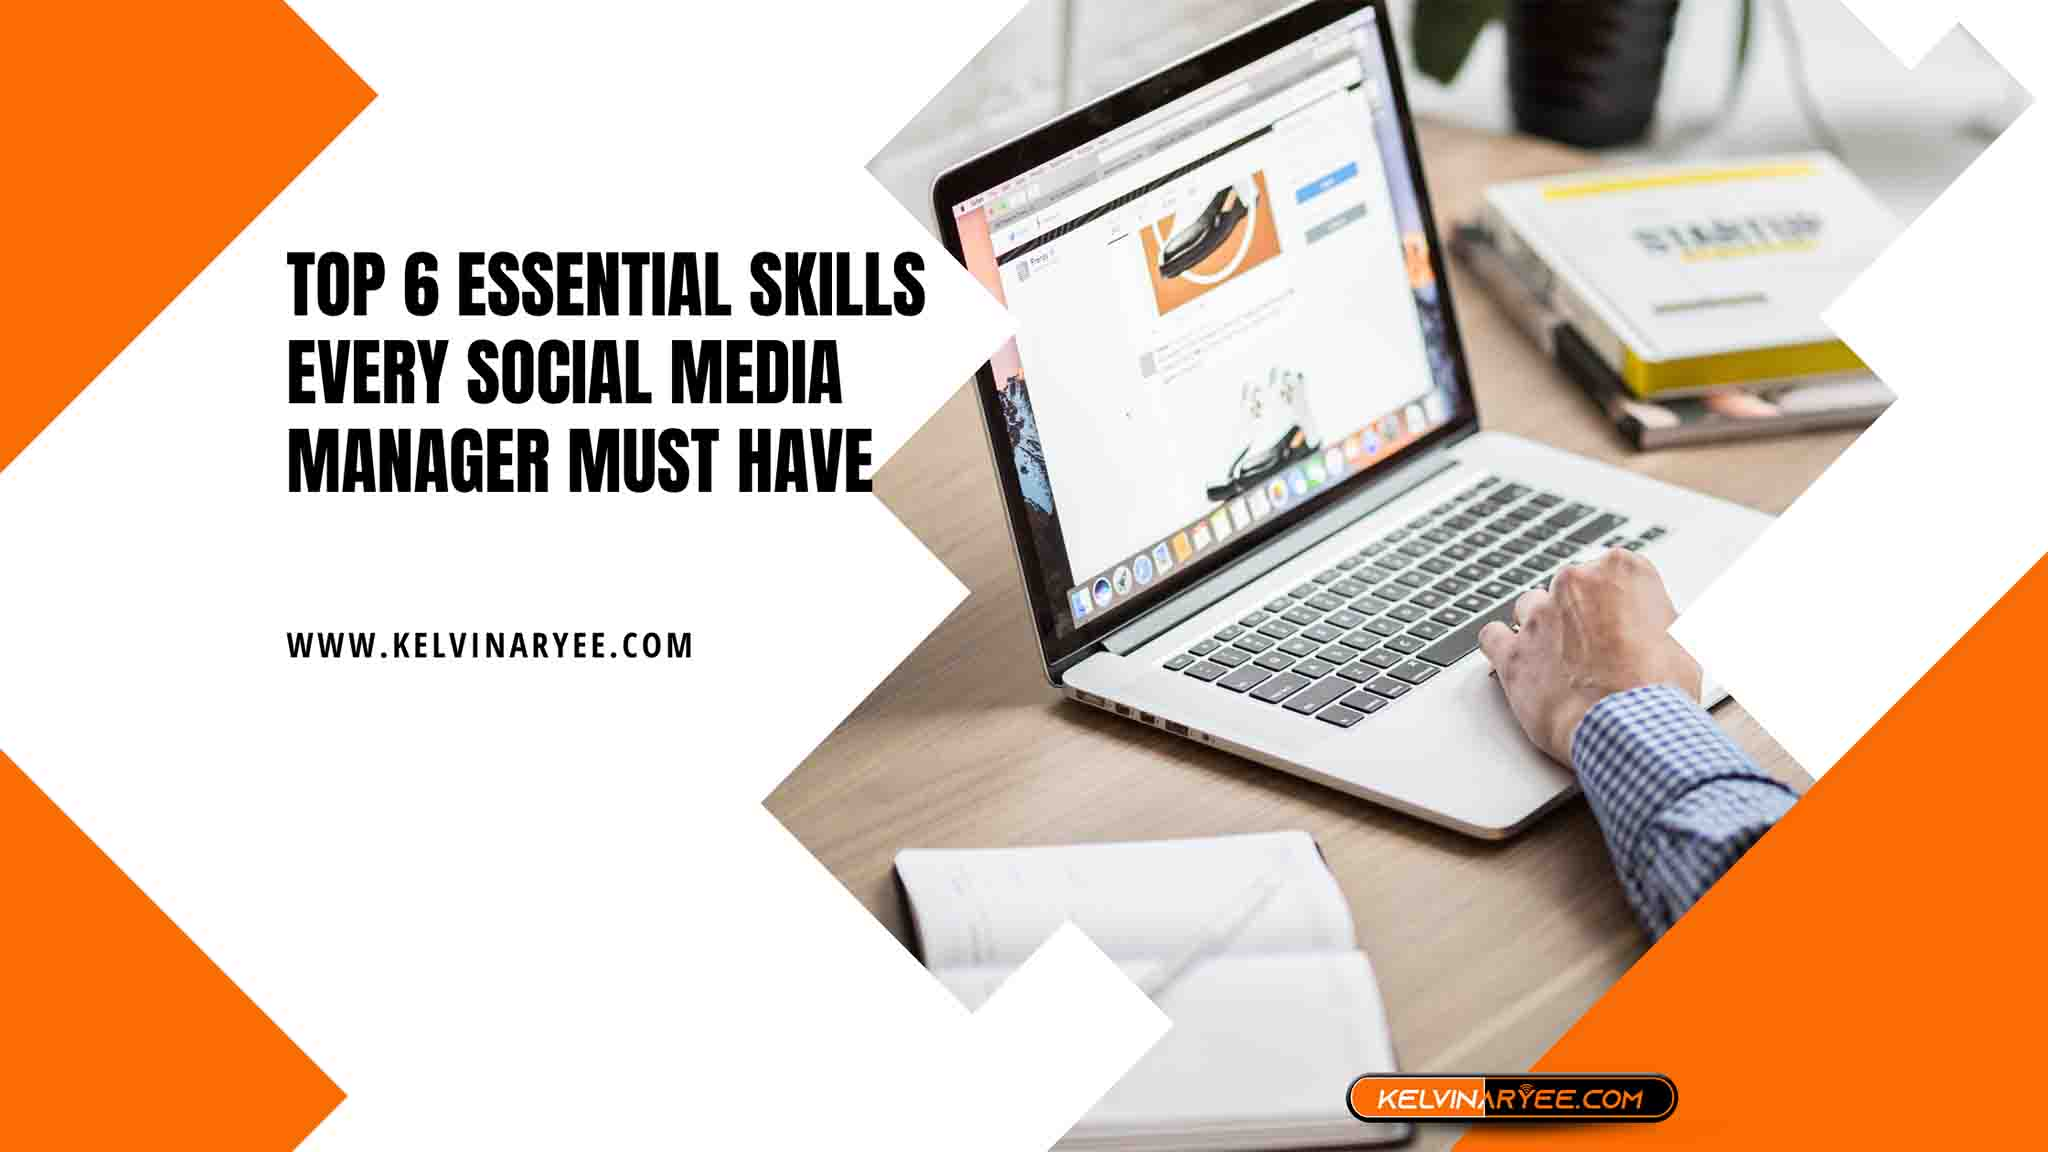 You are currently viewing Top 6 Essential Skills Every Social Media Manager Must Have